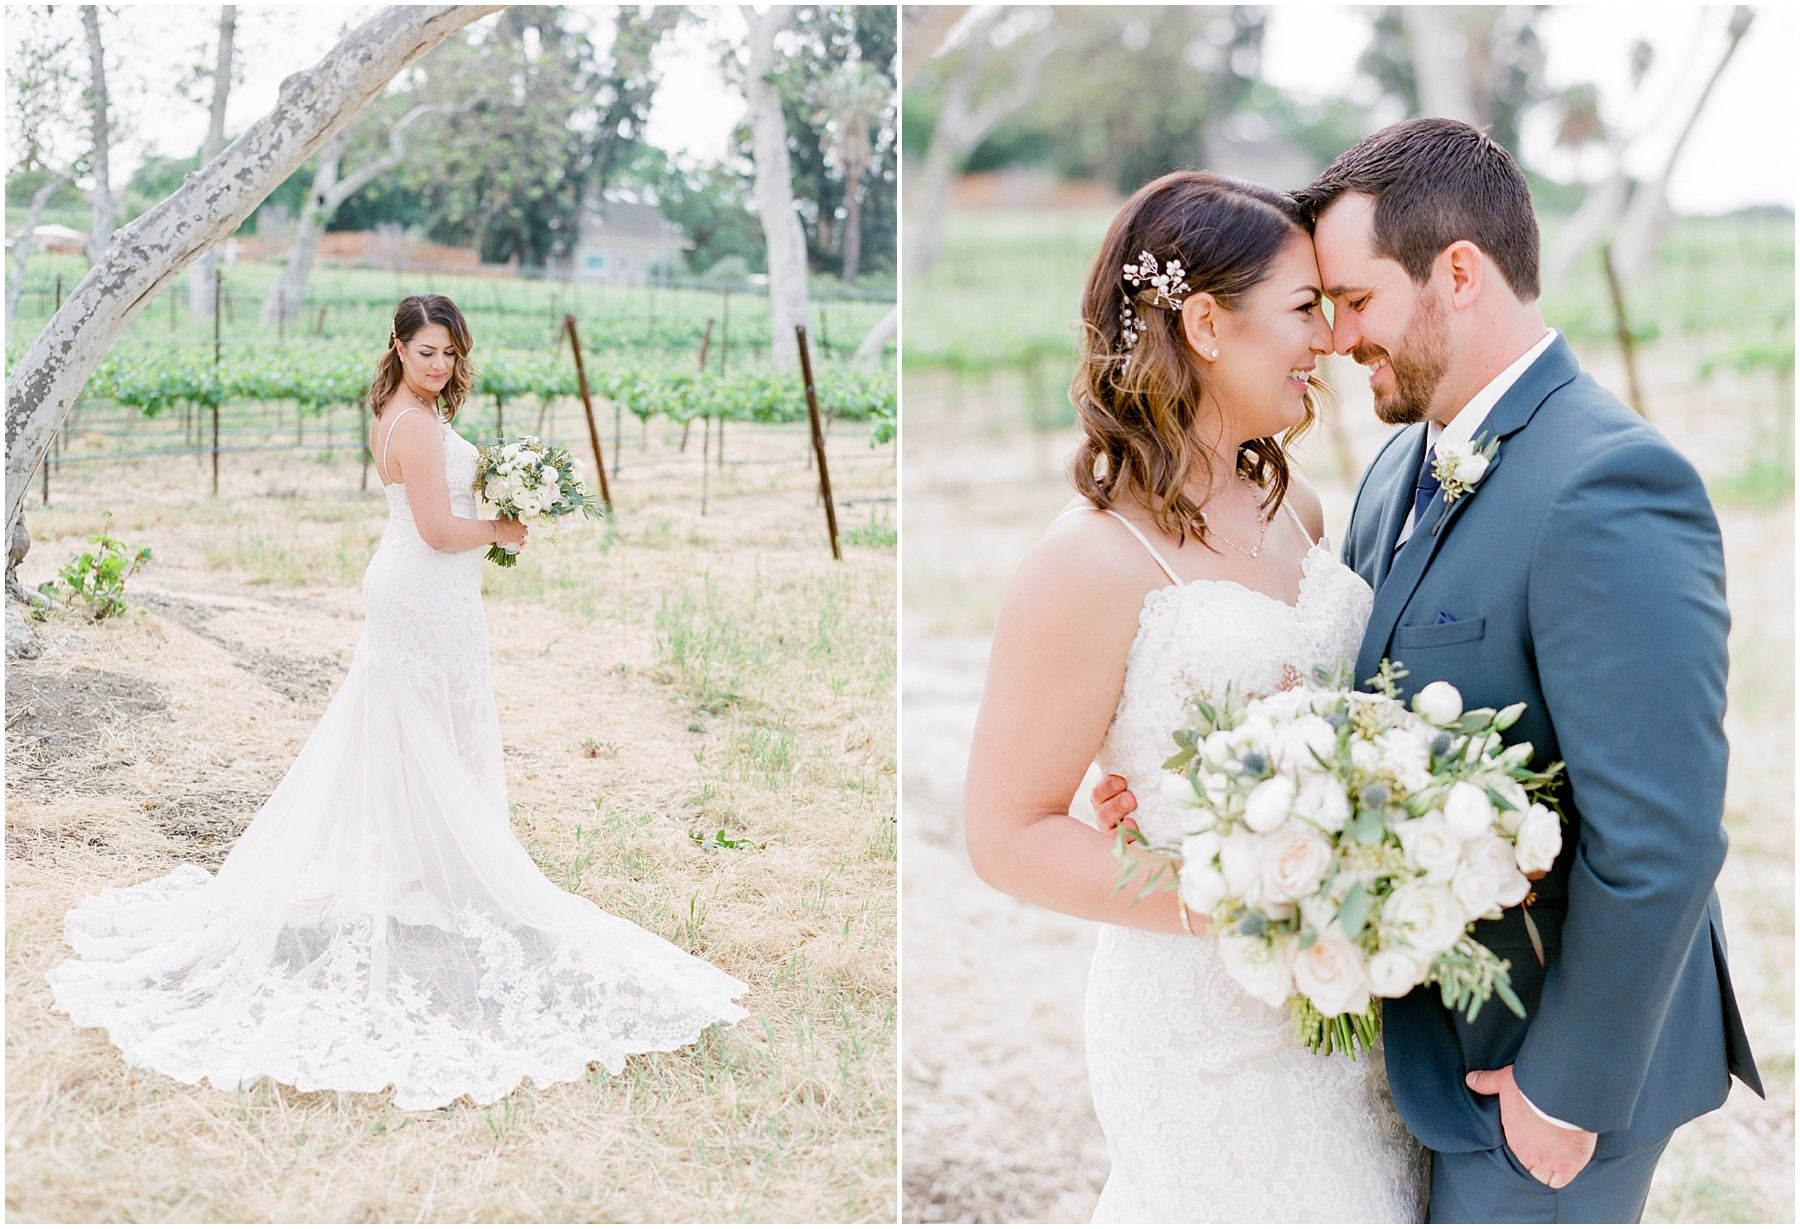 Muriettas-well-wedding-livemore-california-kristine-herman-photography-1-5.jpg